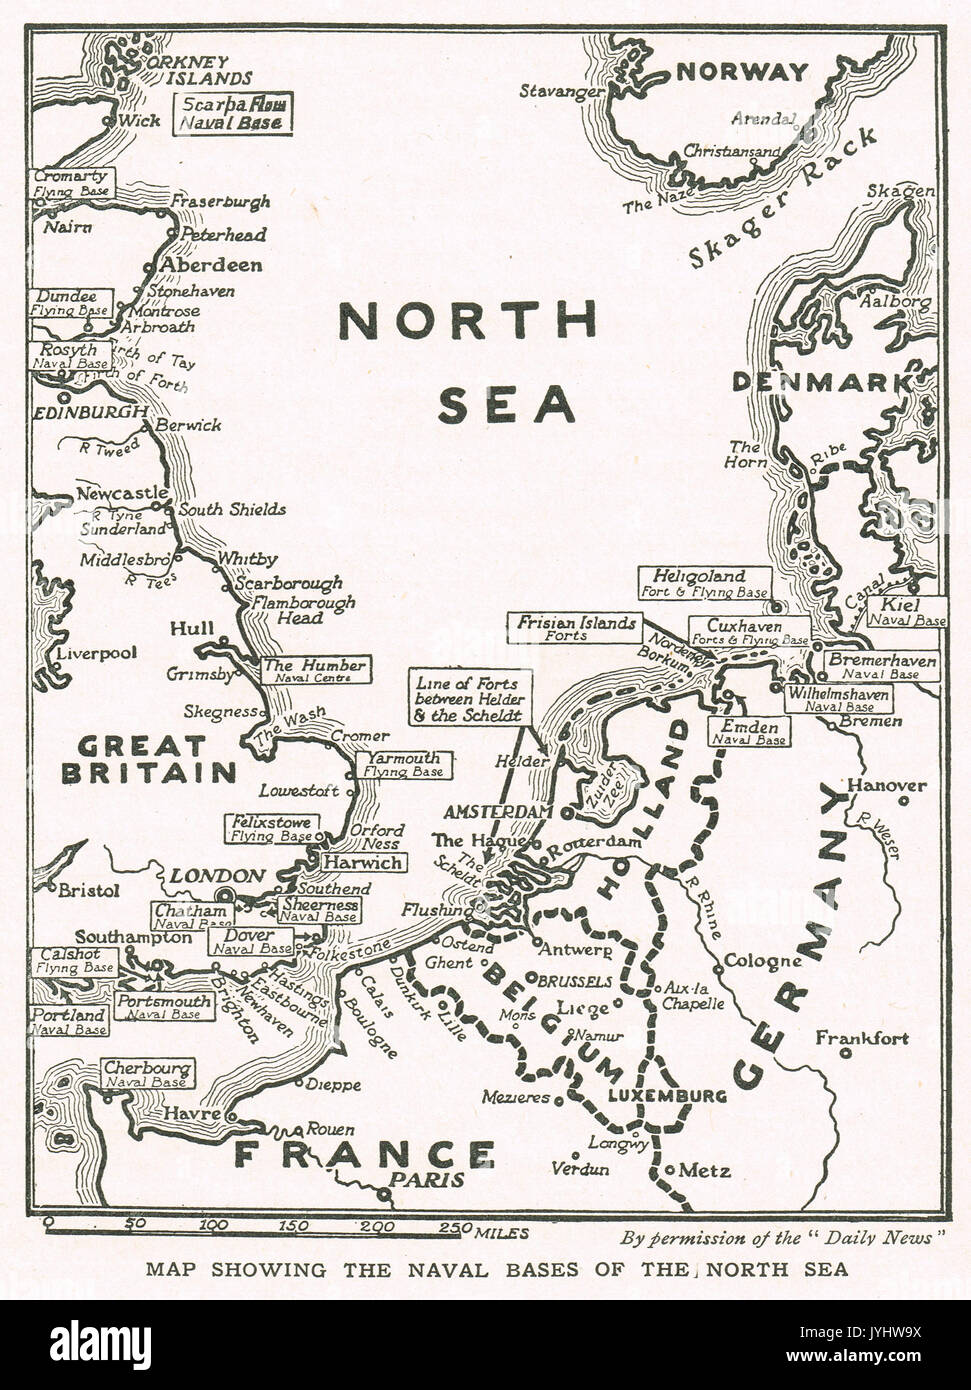 Map showing North Sea naval bases at the start of WW1 - Stock Image